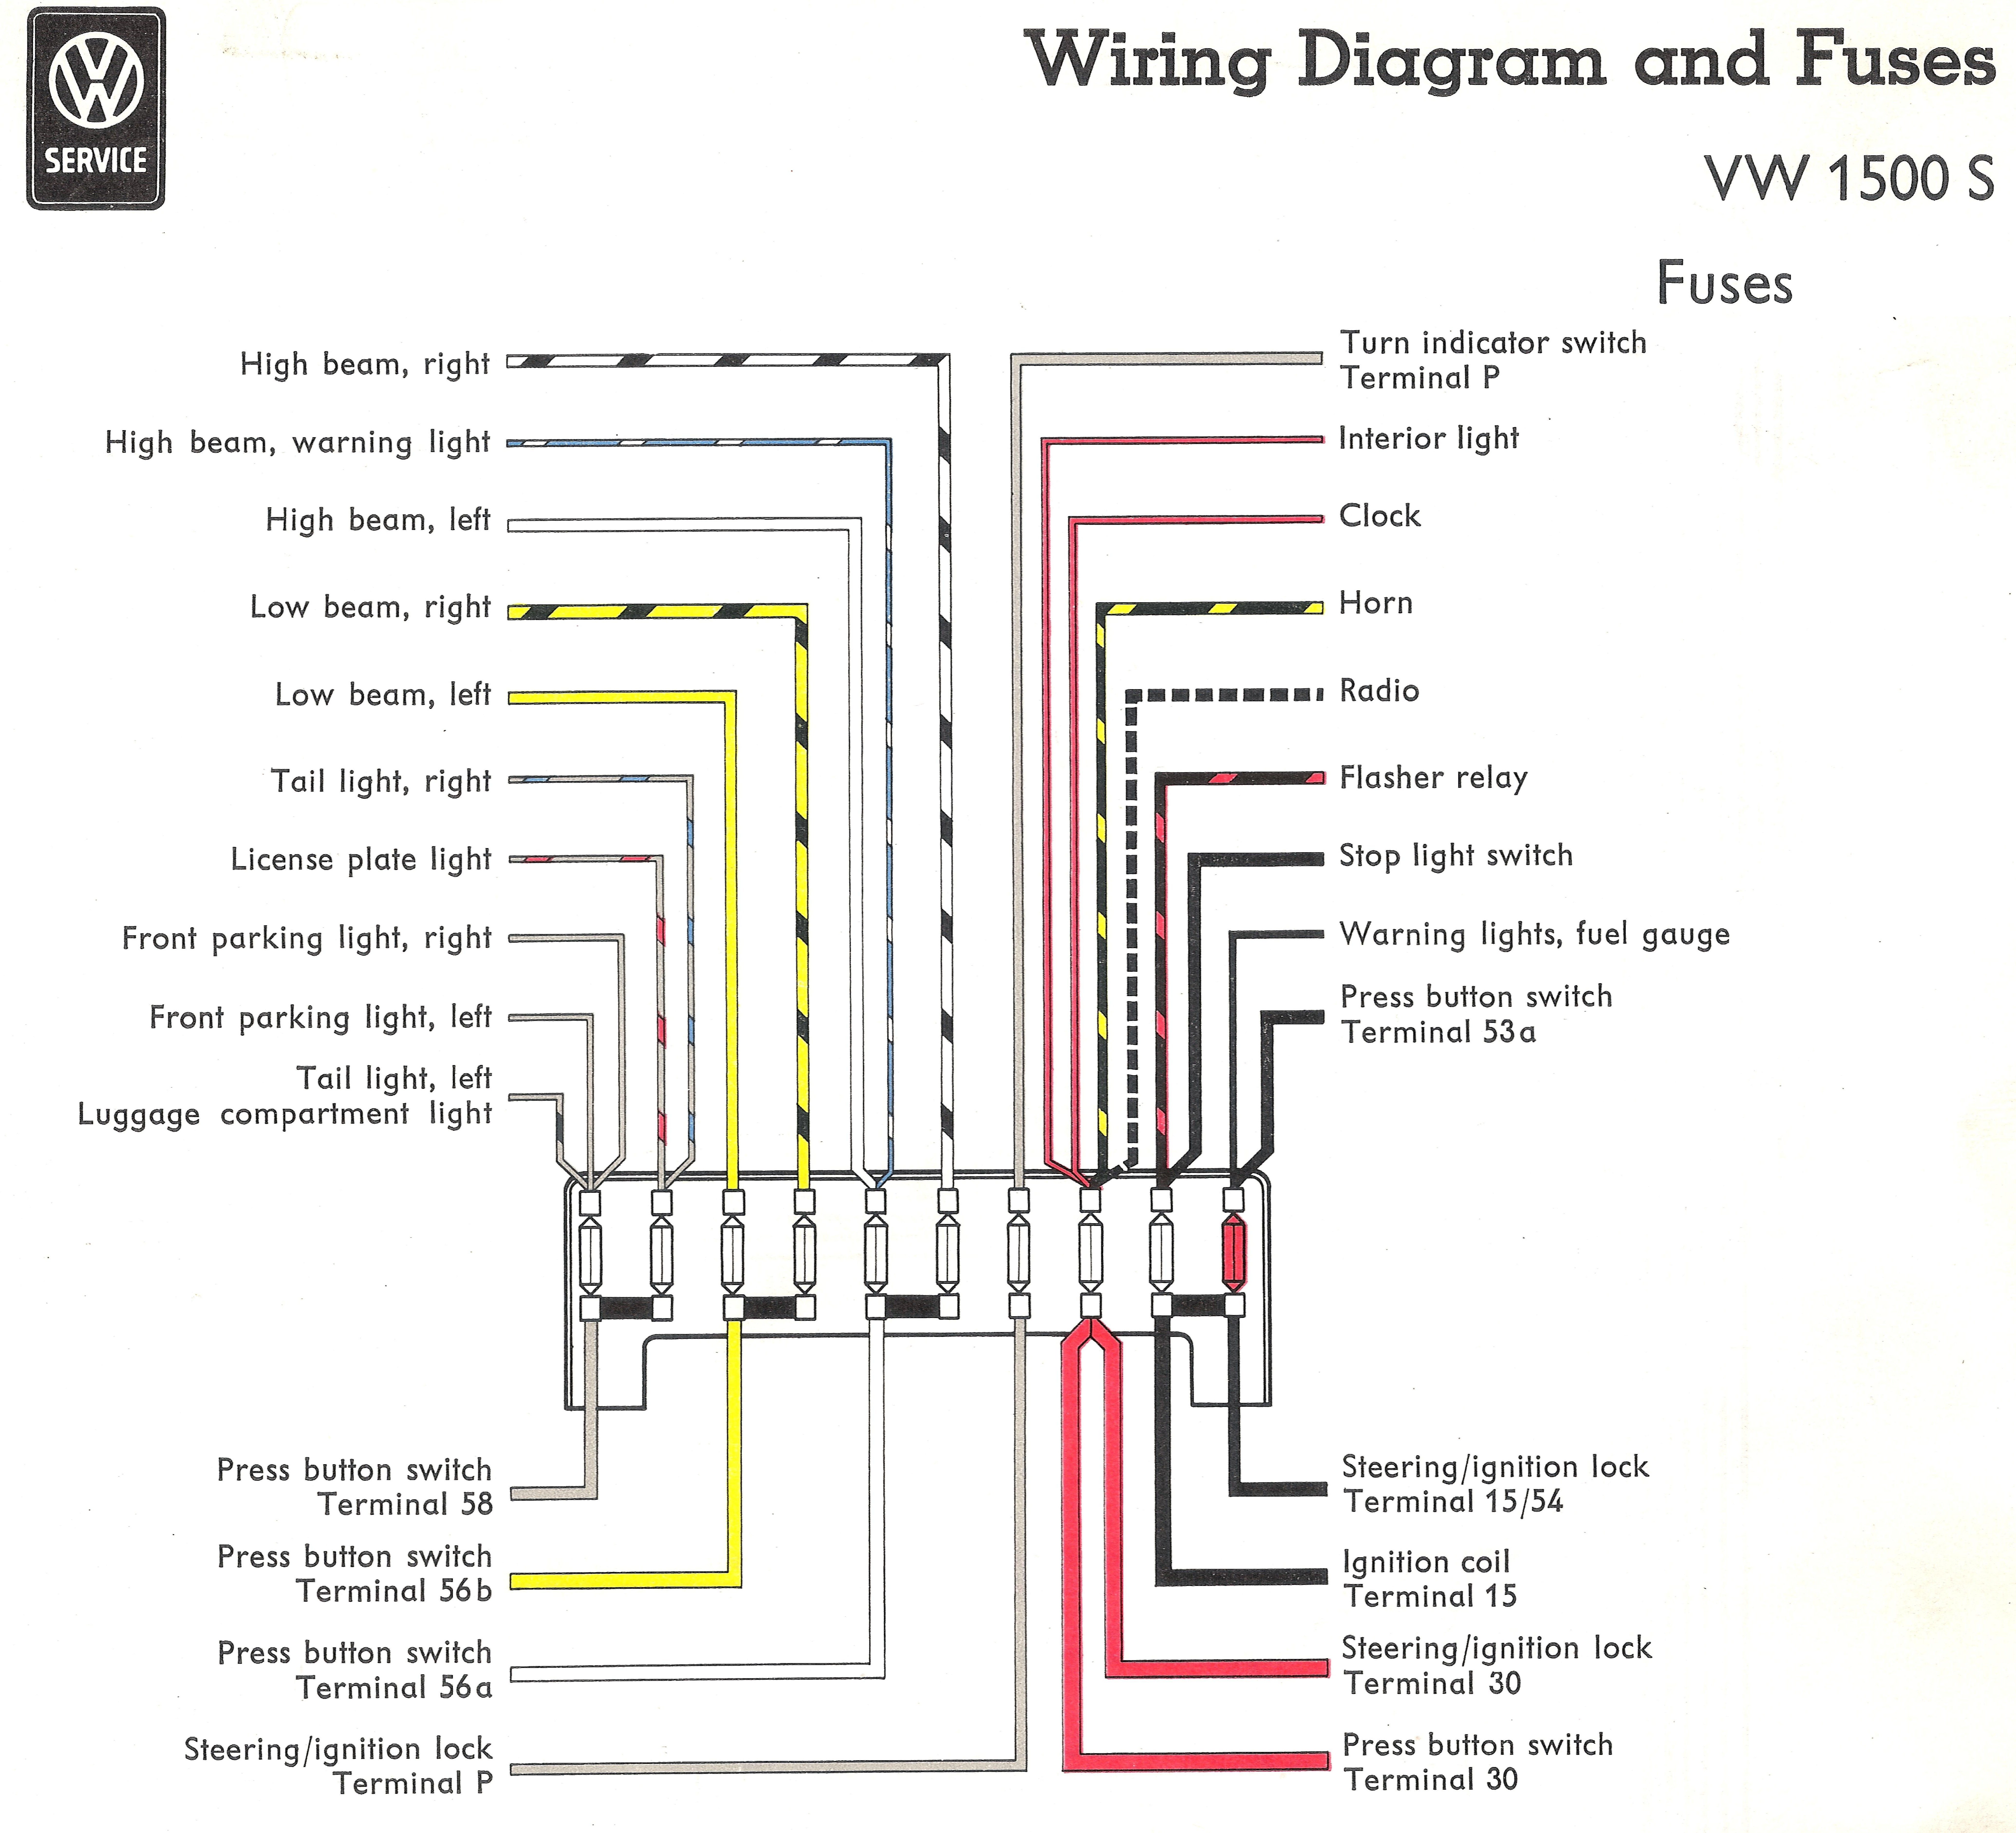 jetta mk4 stereo wiring diagram honda super cub 50 vw golf engine my